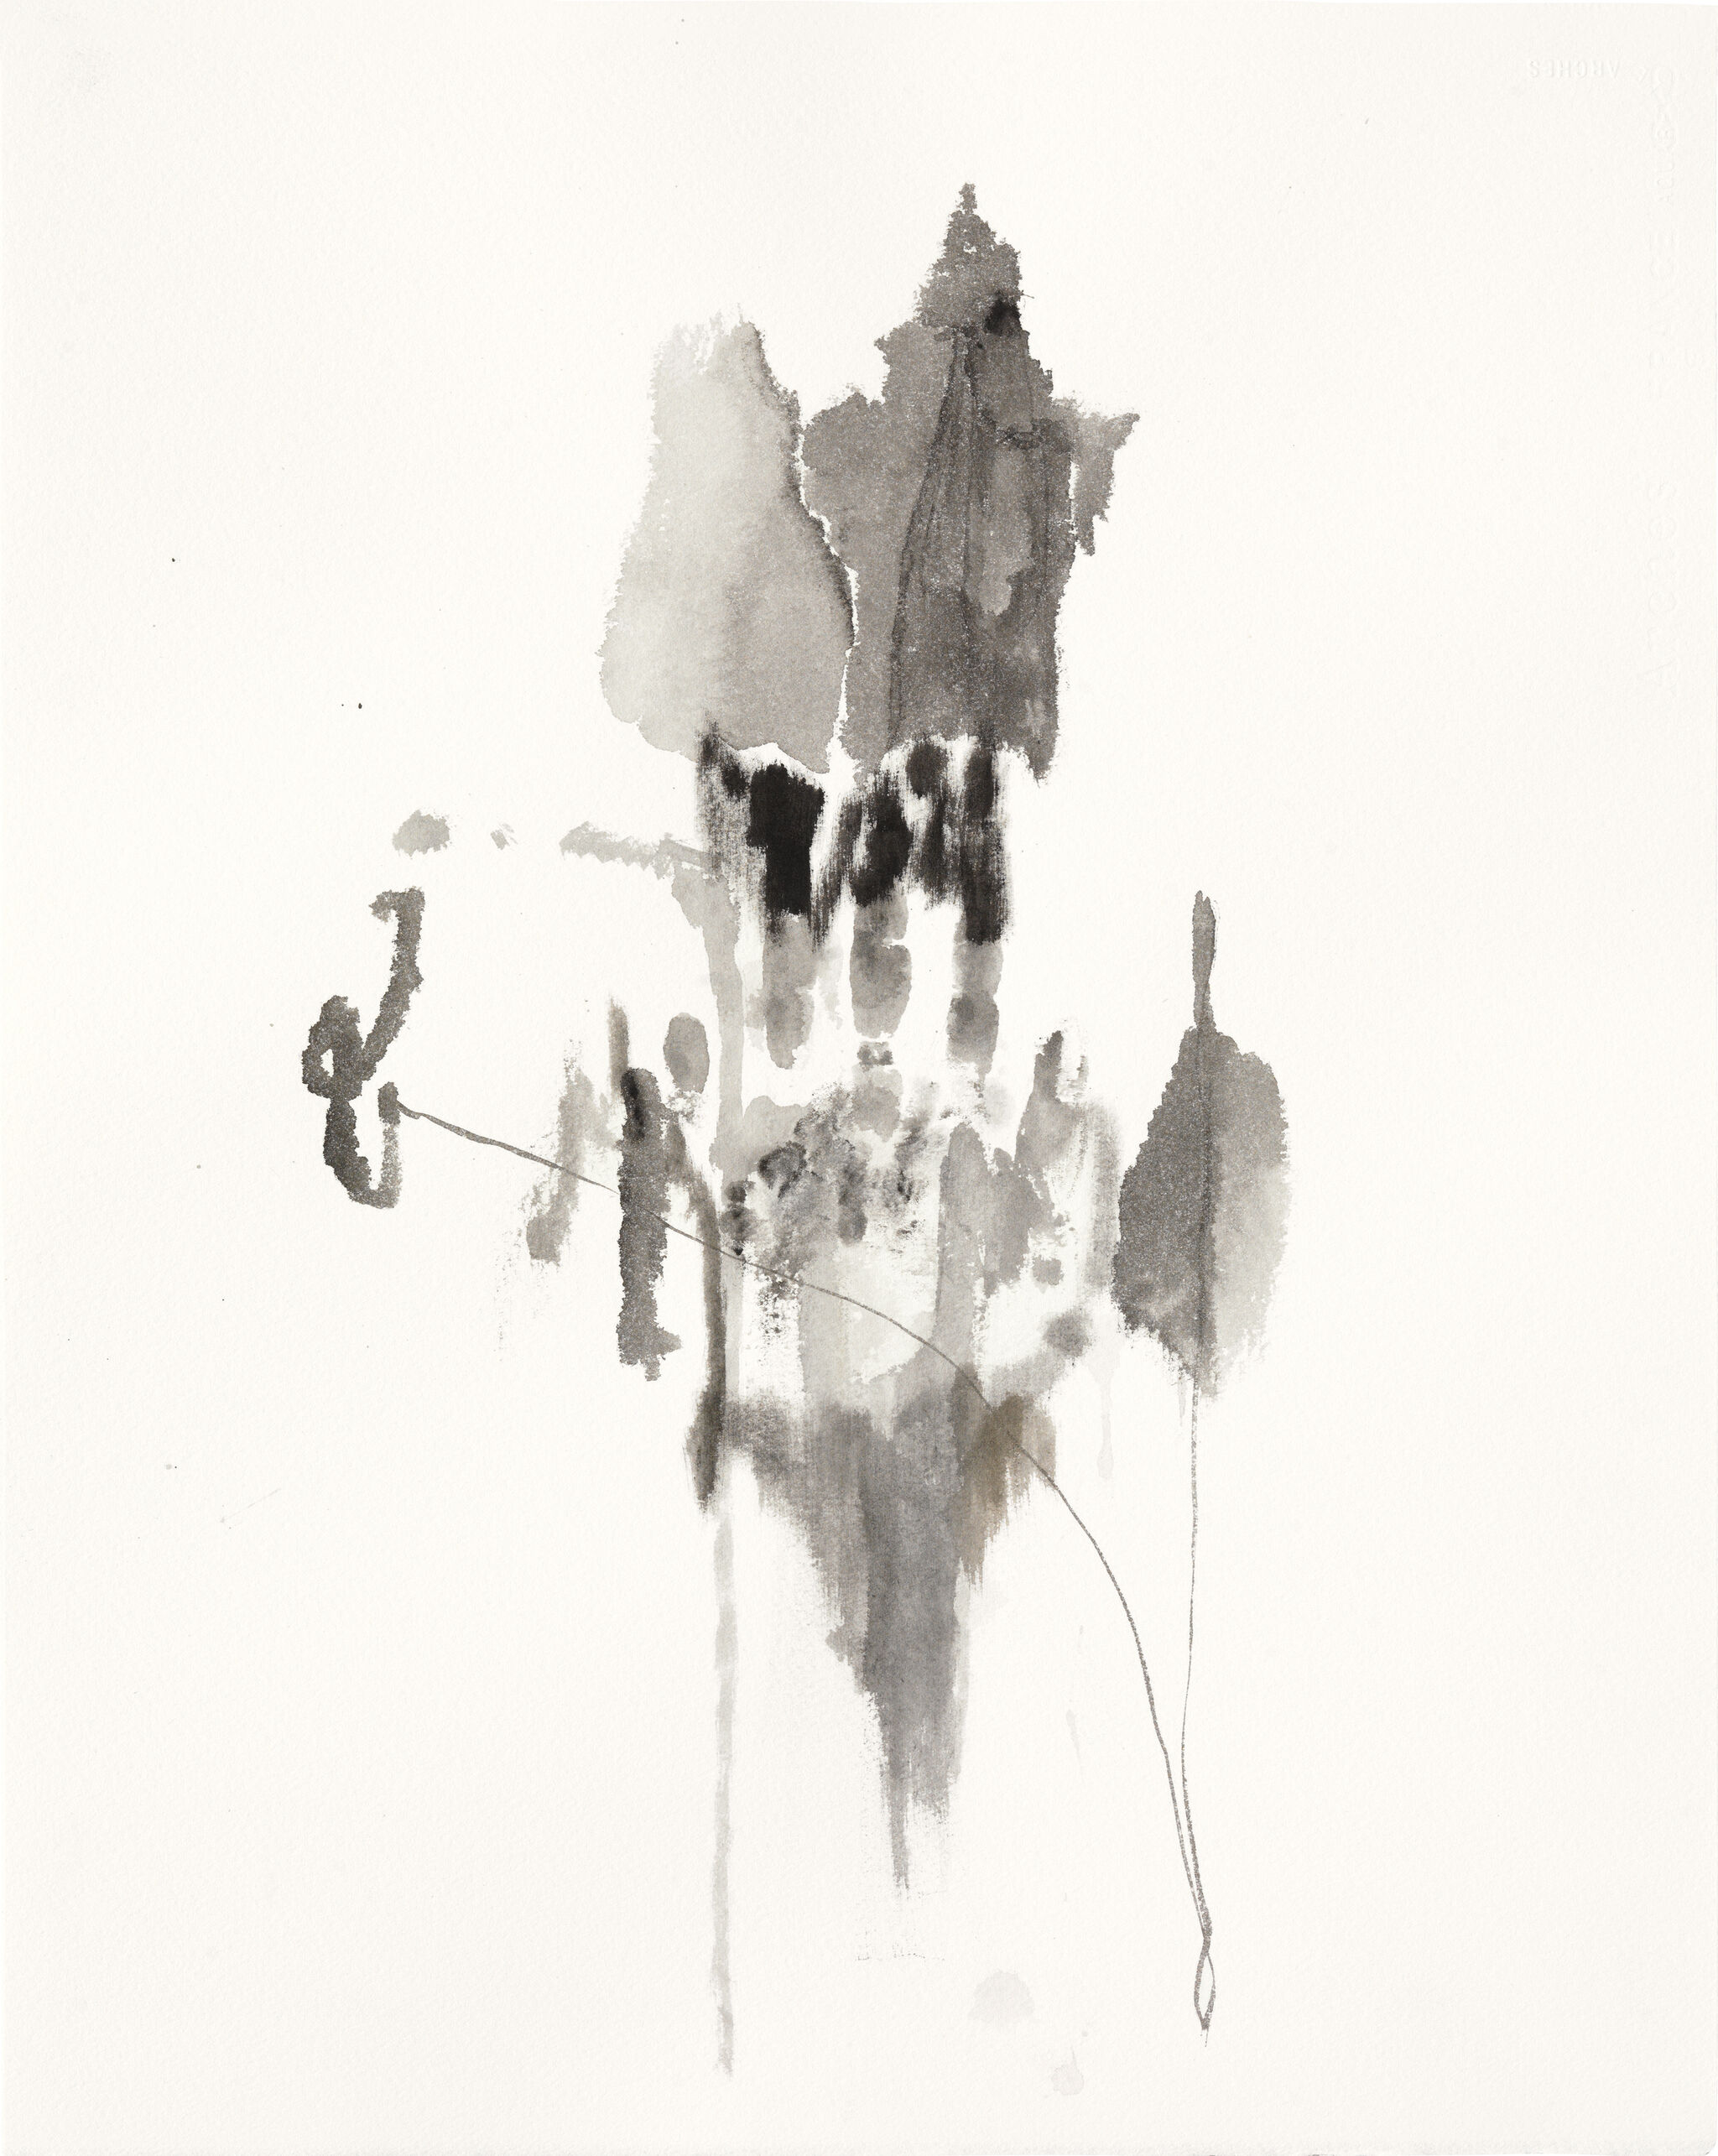 A series of stain-like splotches of ink create an abstract shape in the center of the paper.